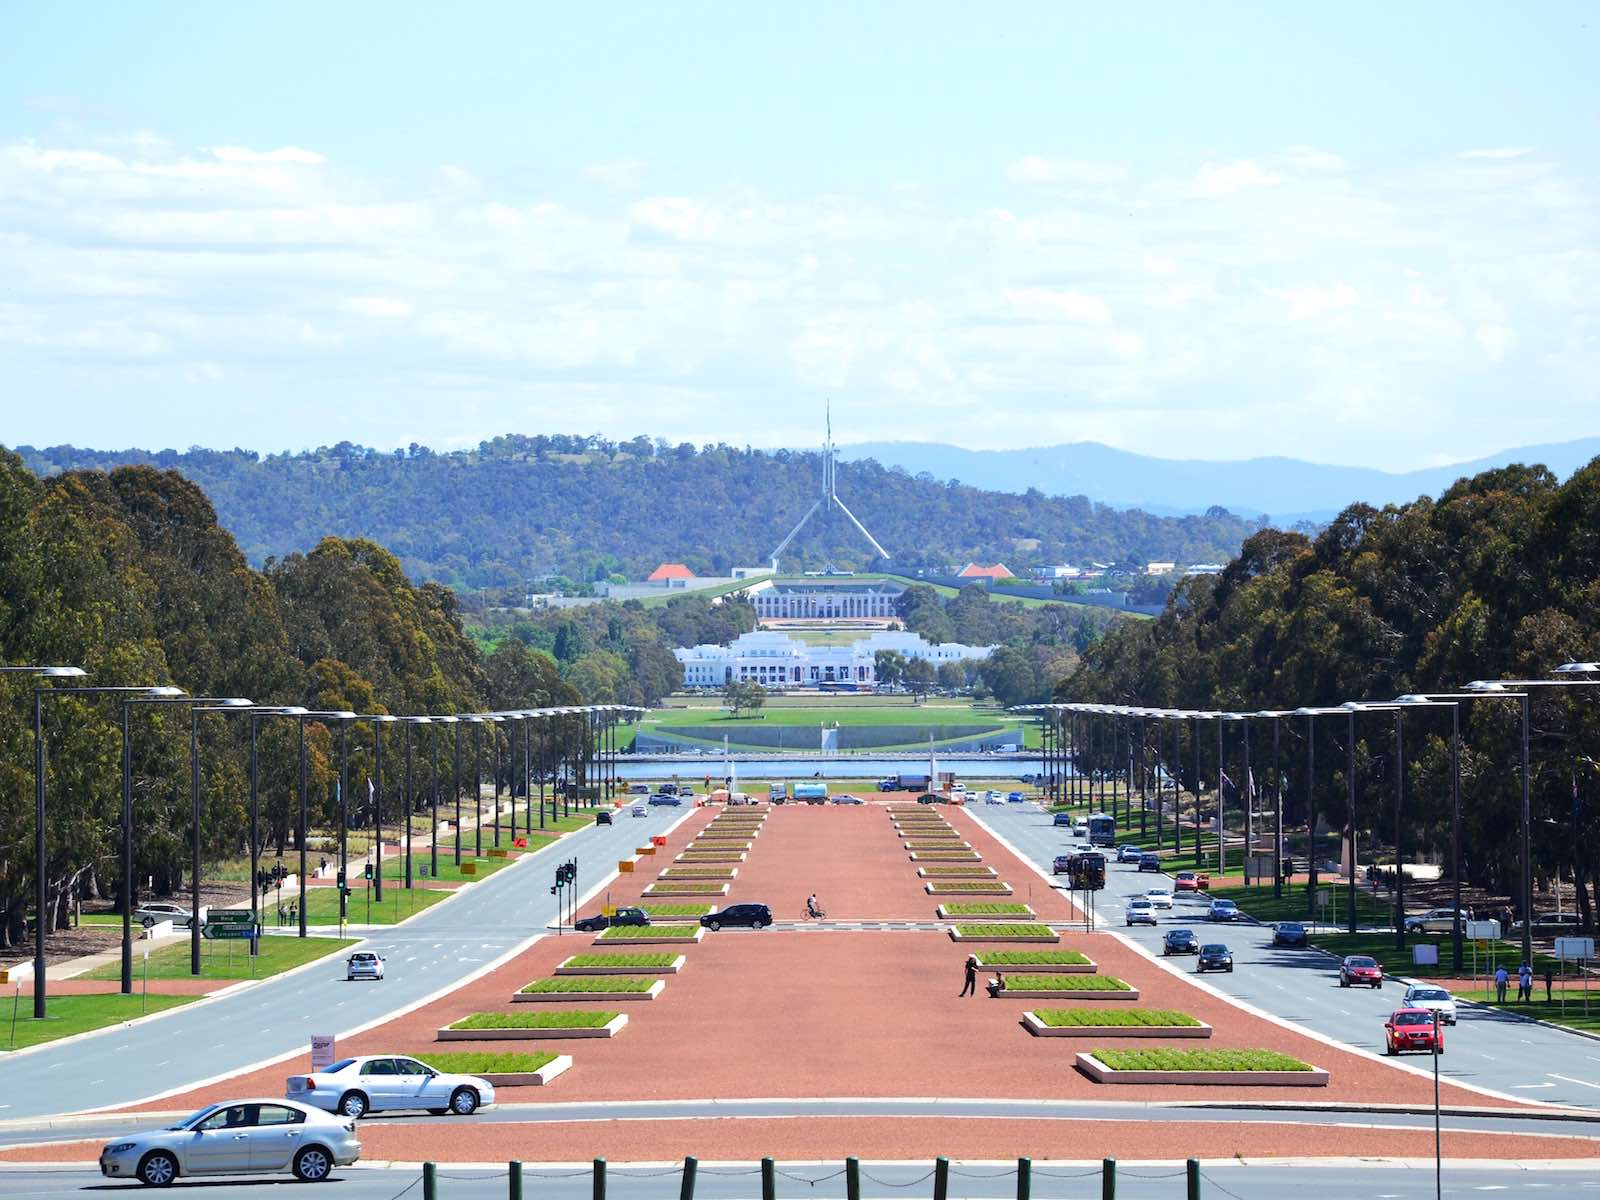 stedentrip Canberra